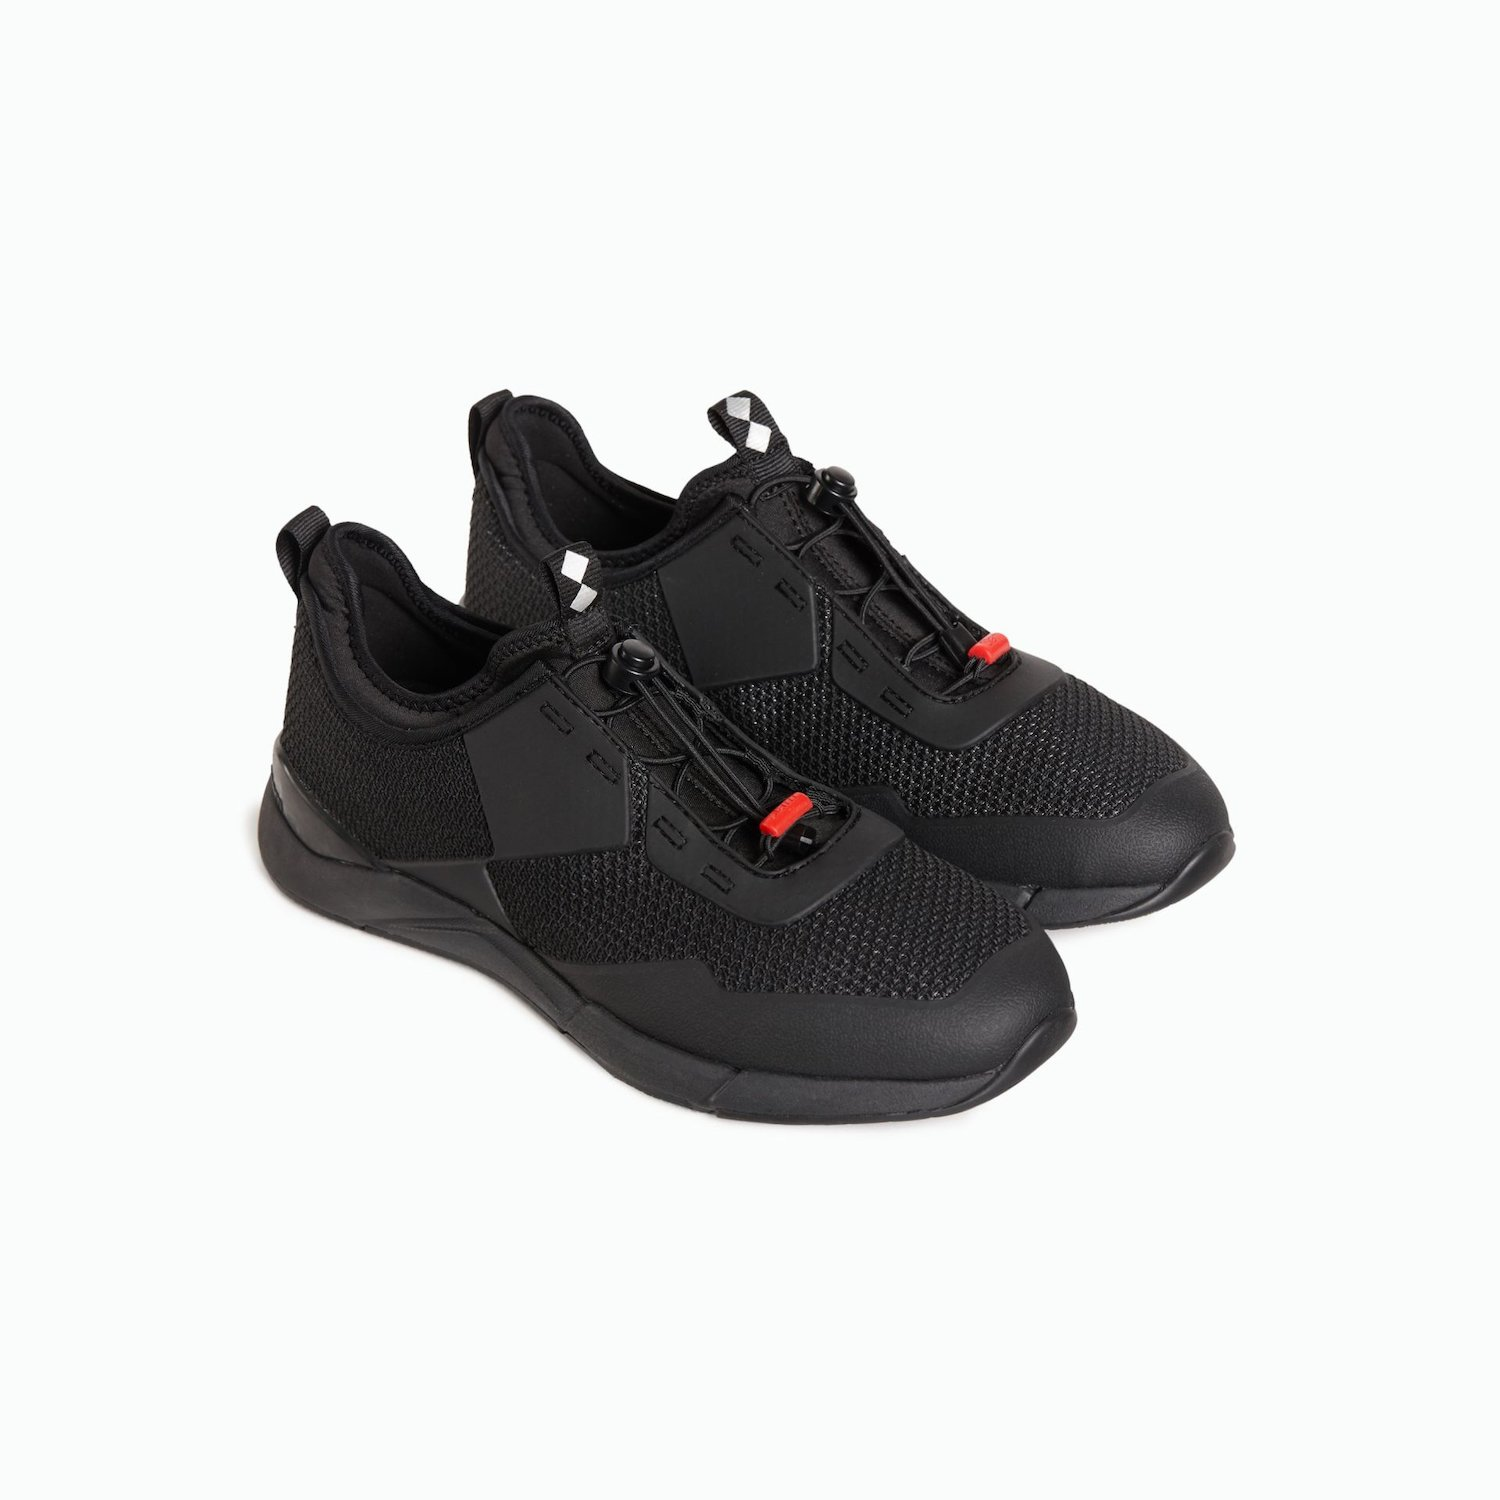 Wind-D Shoe - Black